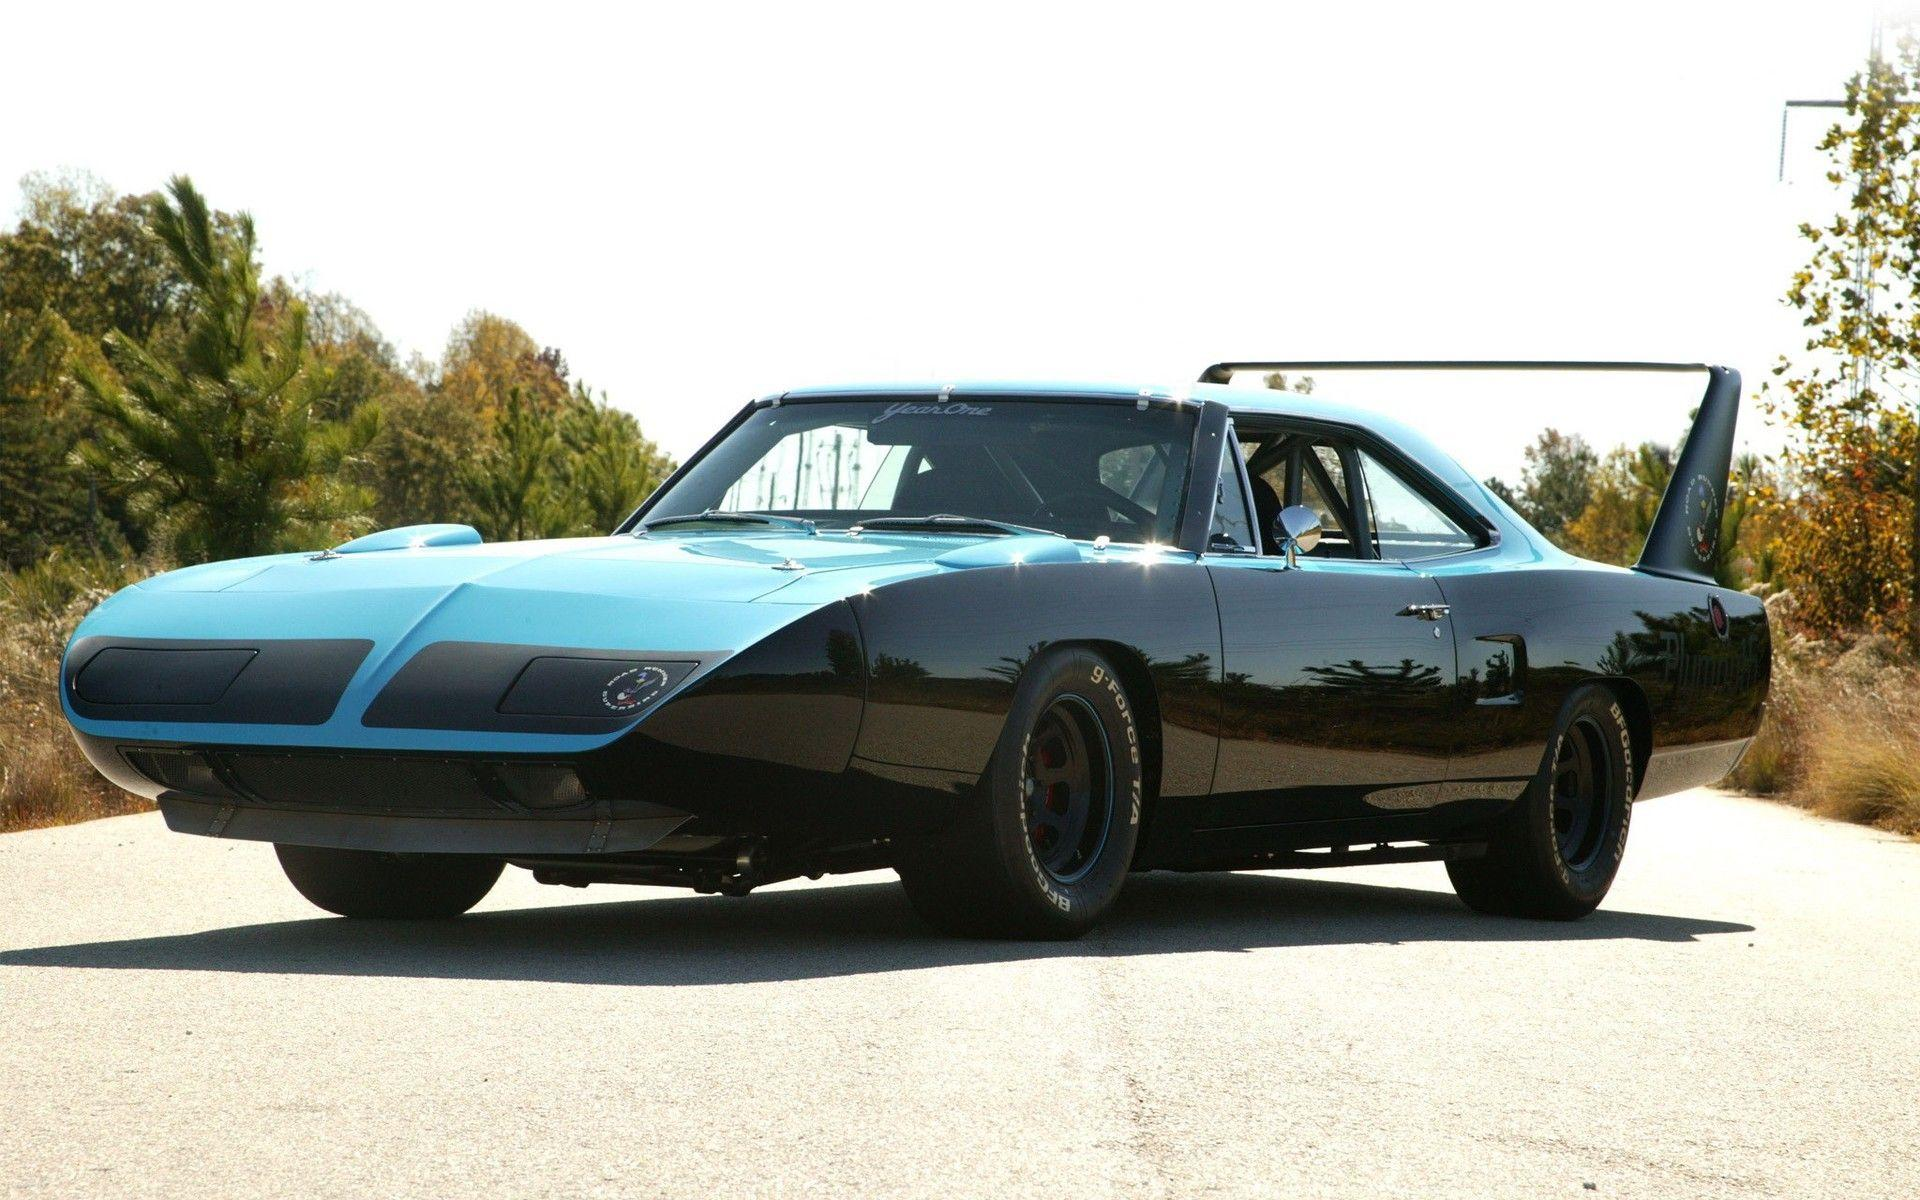 Plymouth road runner superbird cars wallpaper | AllWallpaper.in ...